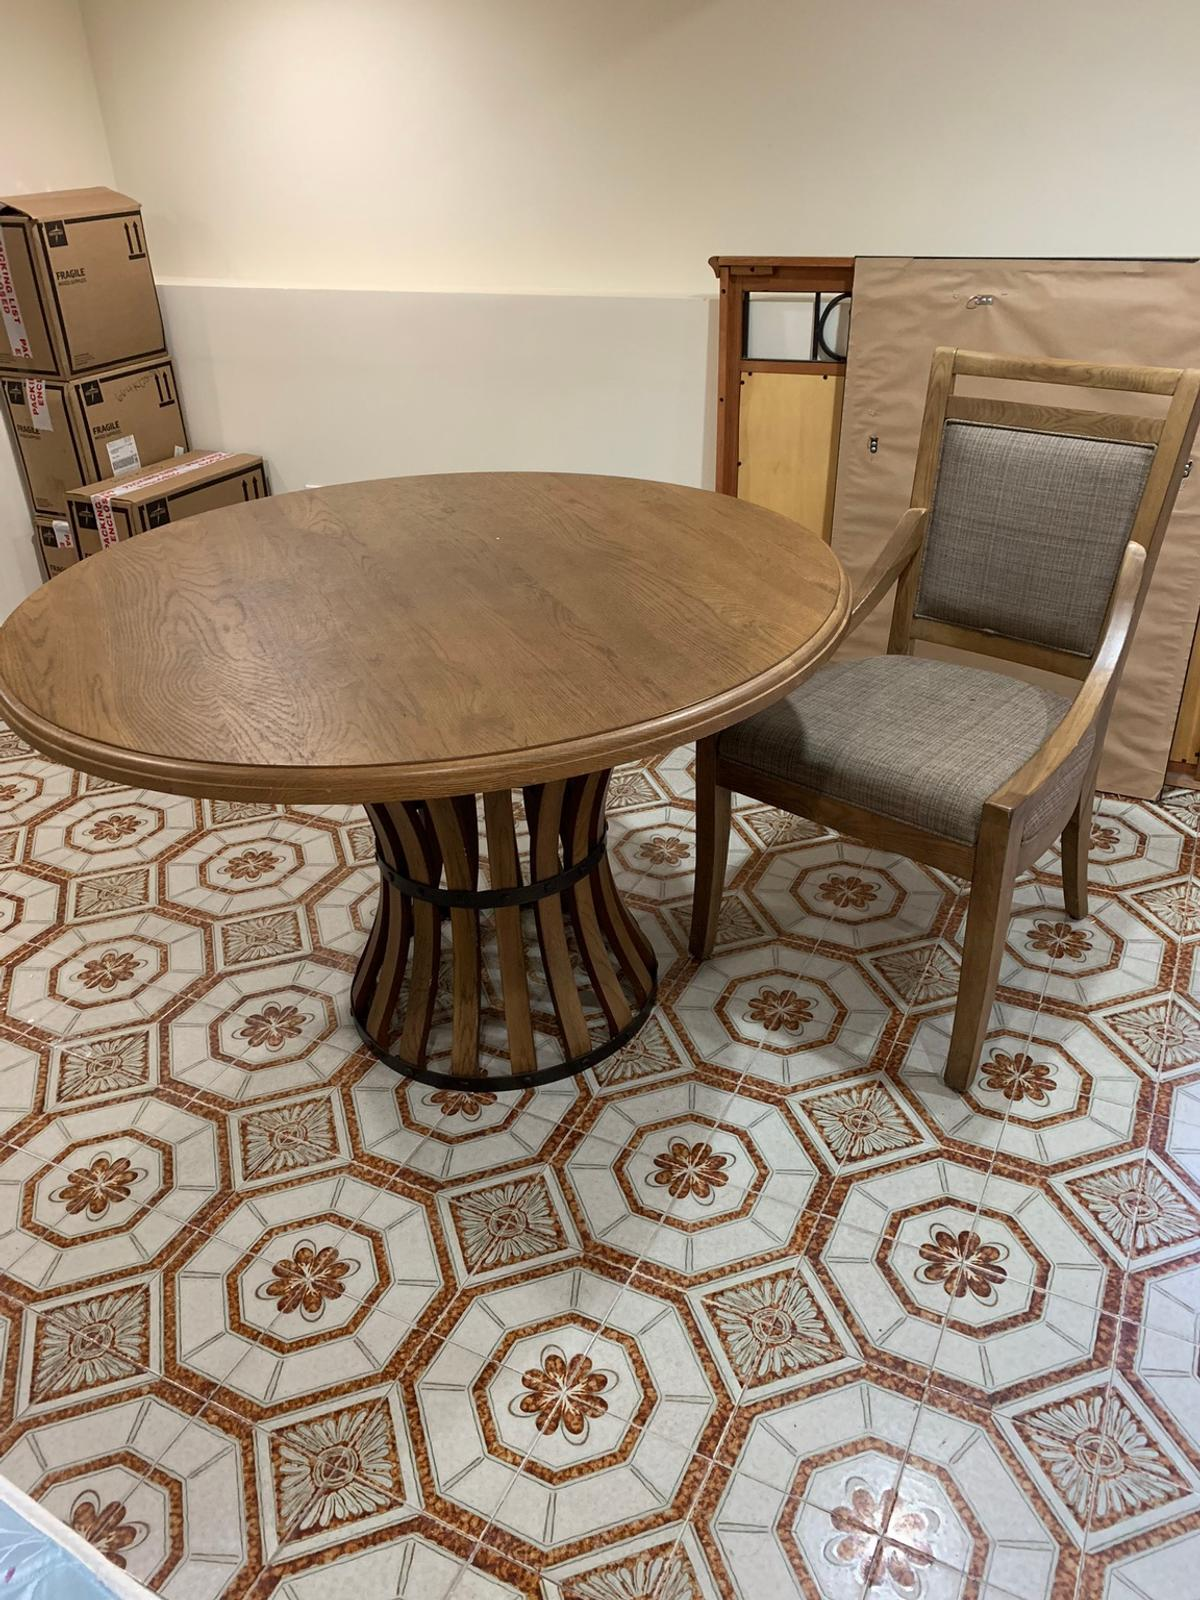 brand new never used dining room table set in 07002